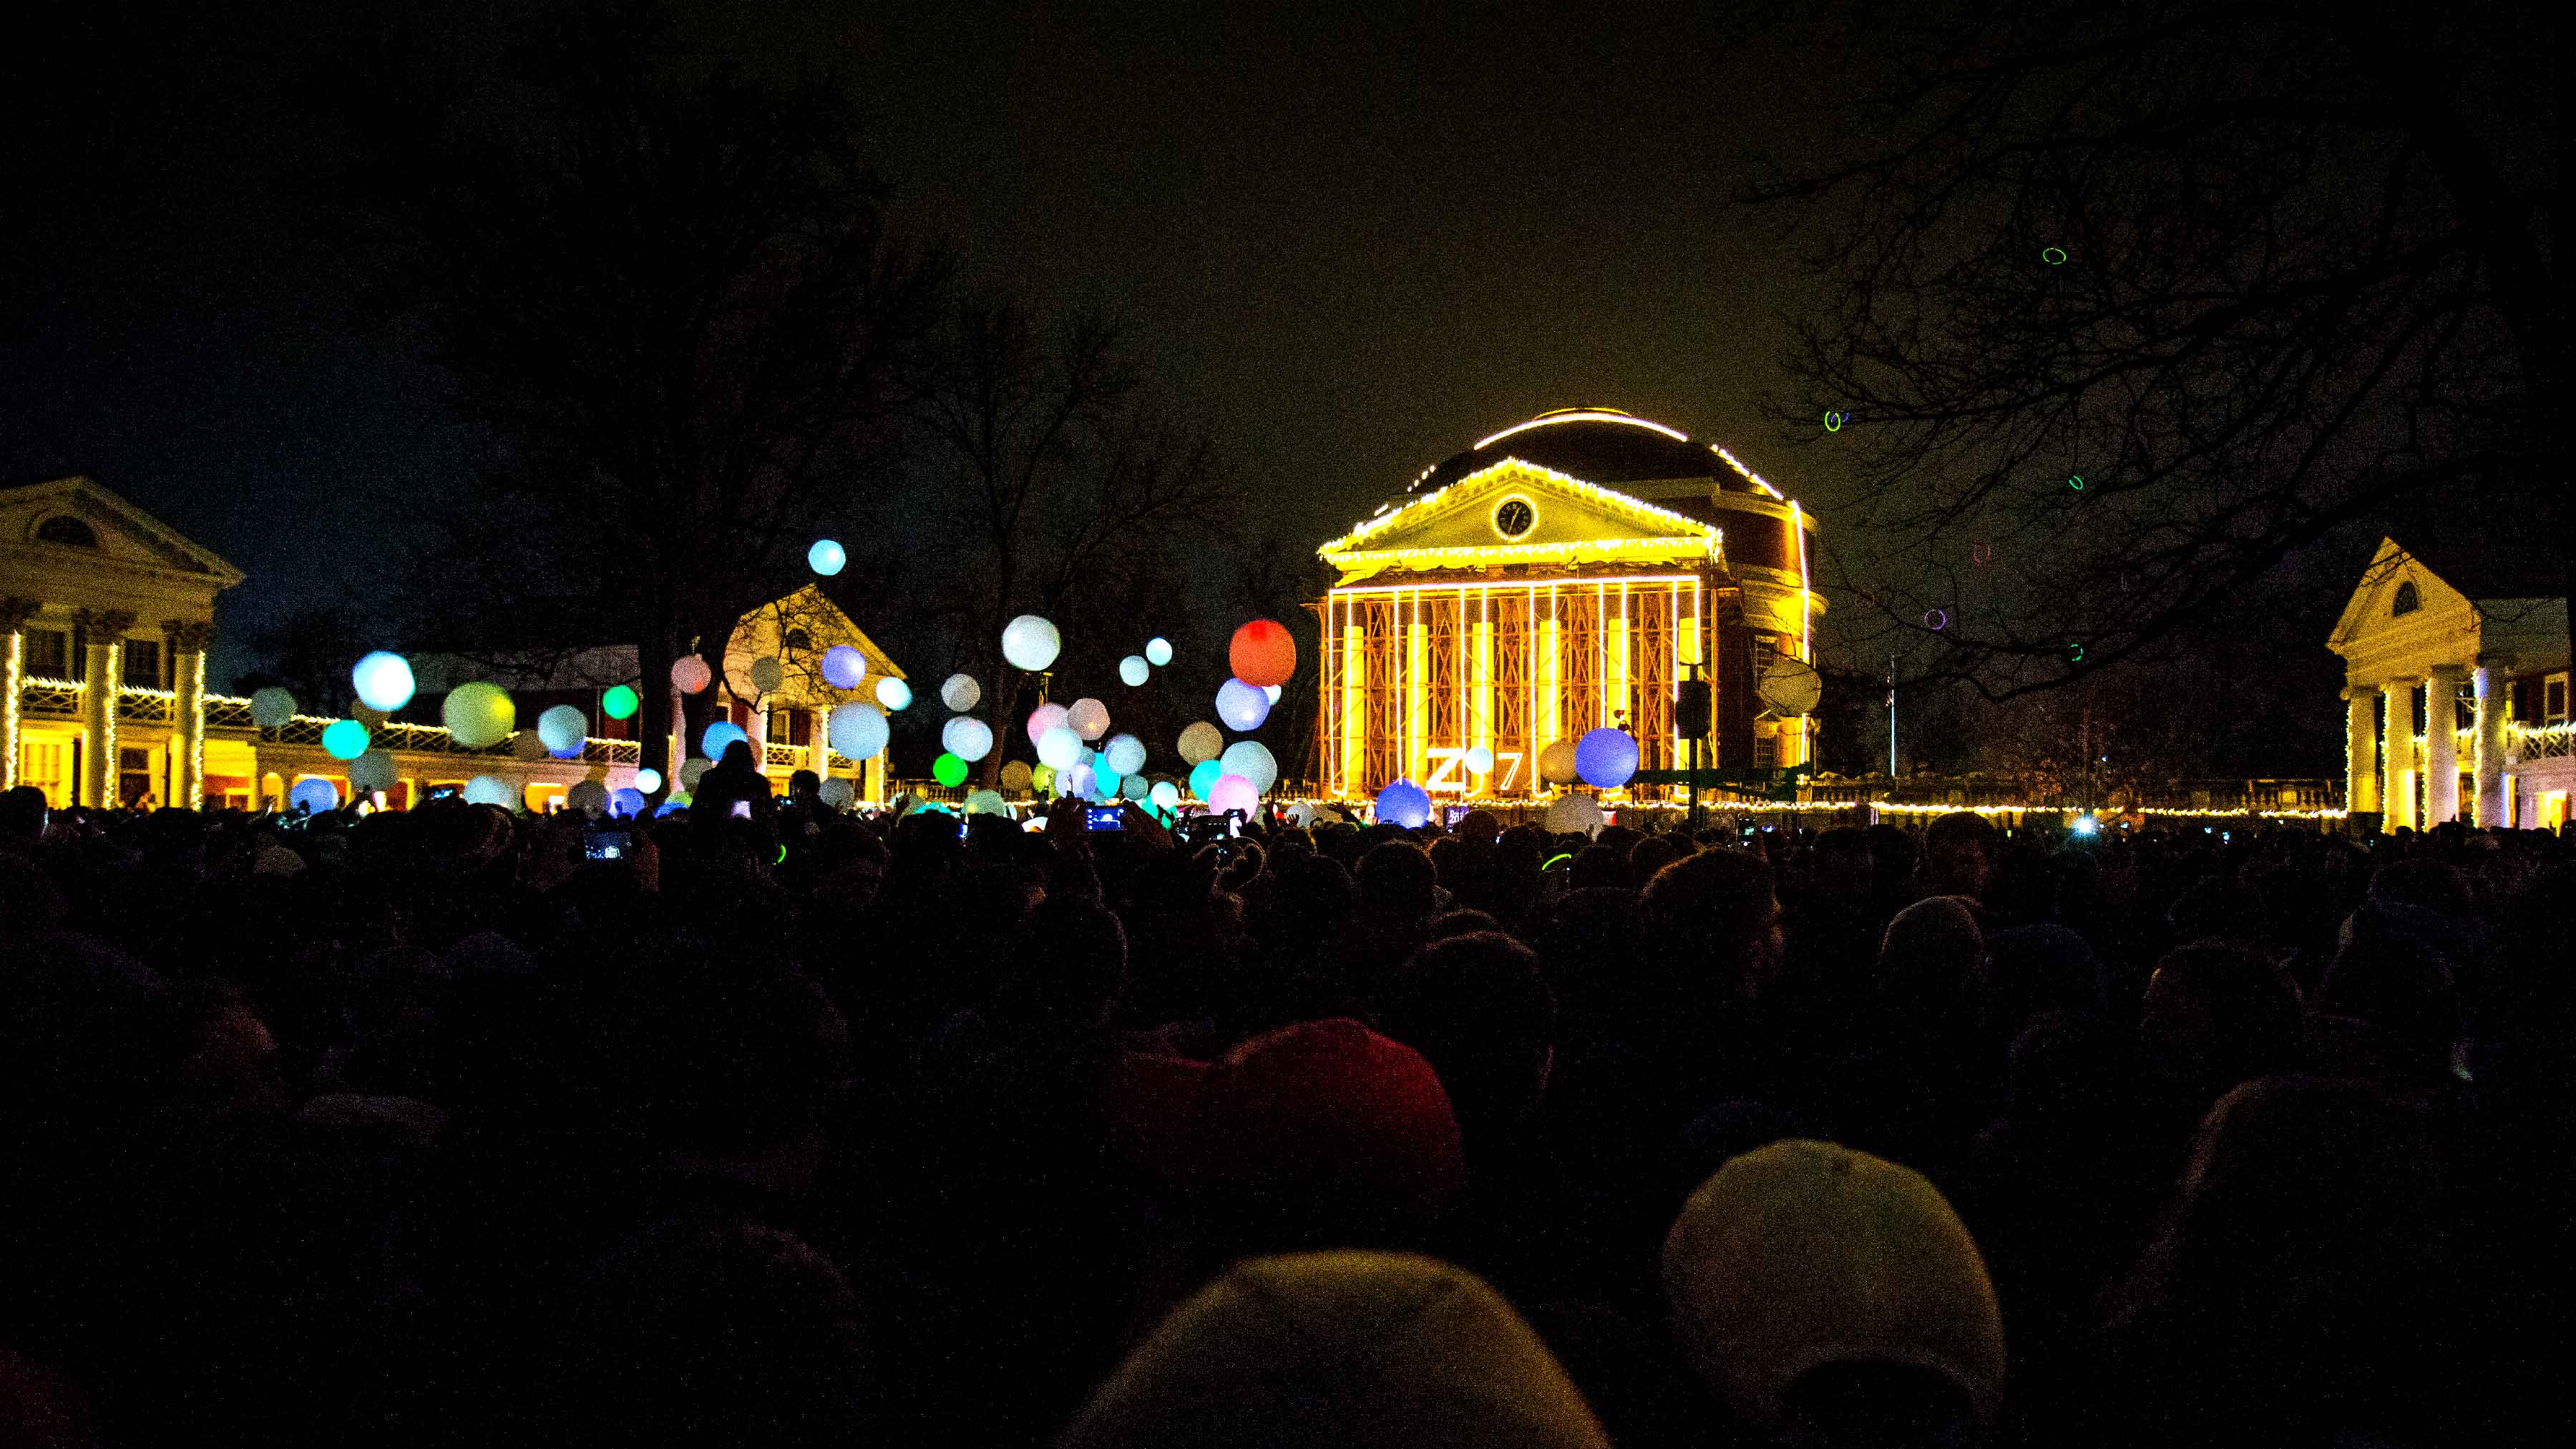 Thursday's 16th annual Lighting of the Lawn will bring together members of the University and local communities.